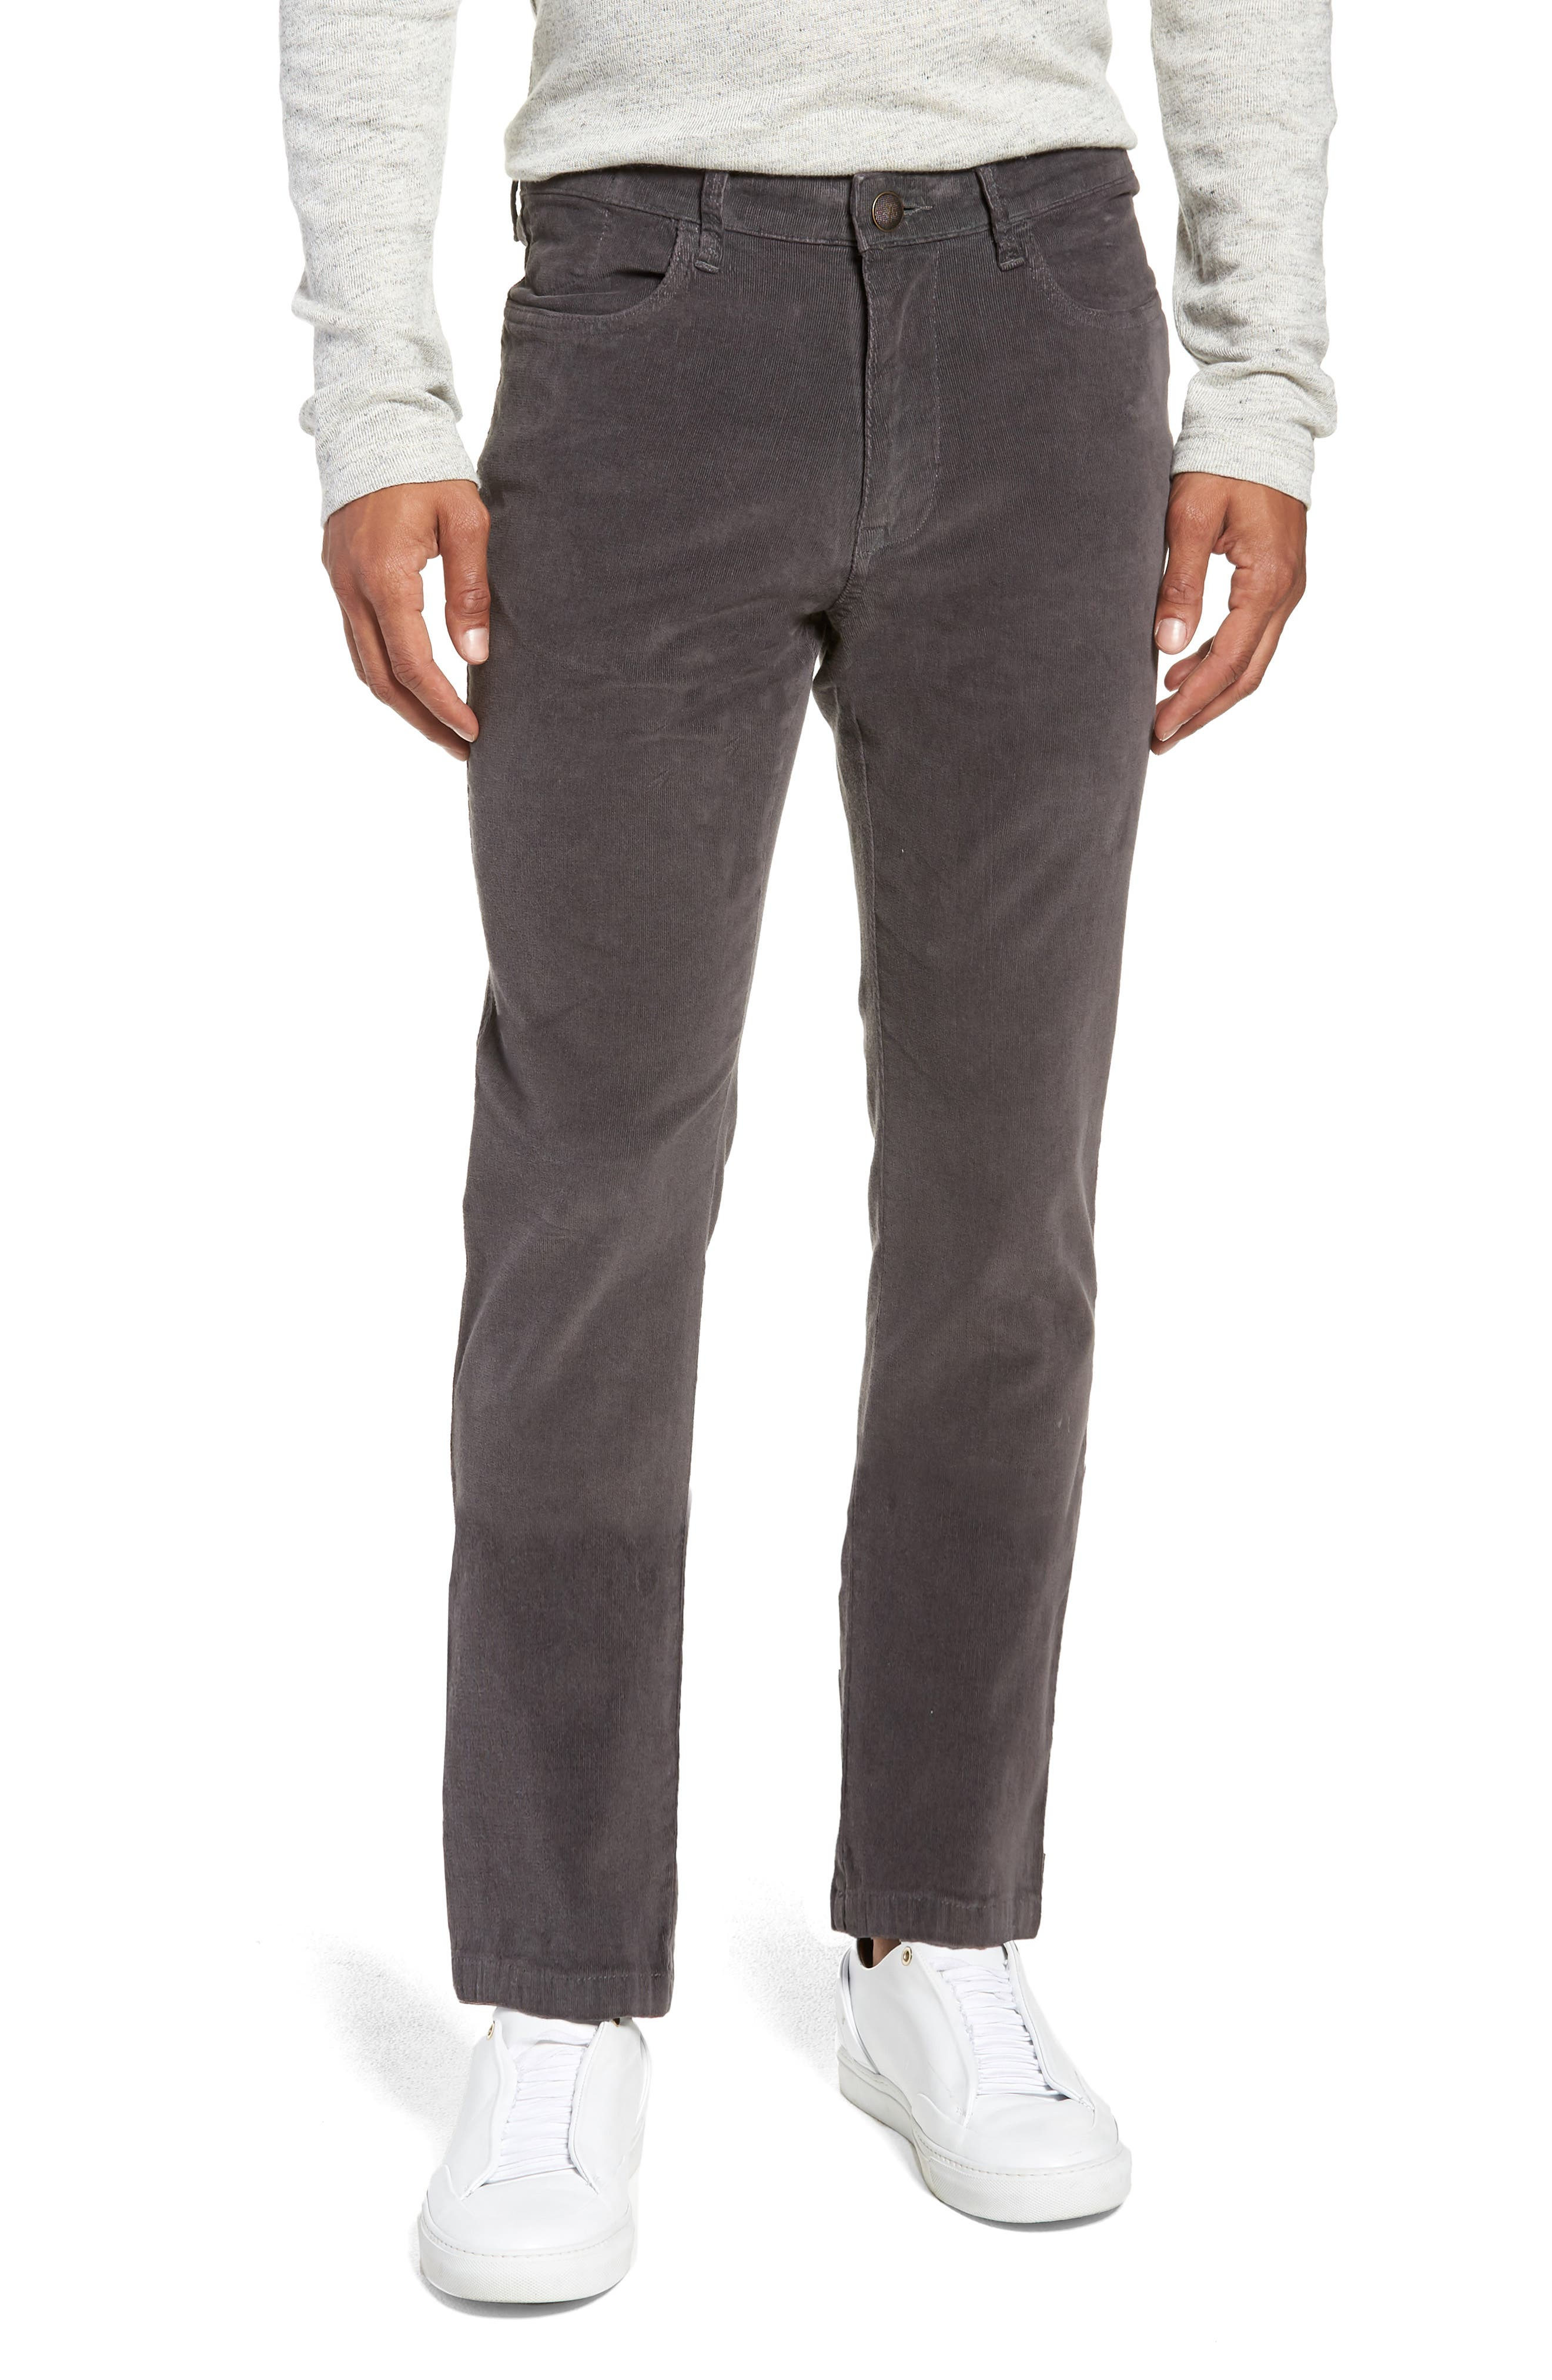 VINTAGE 1946 Modern Fit Stretch Corduroy Pants in Charcoal